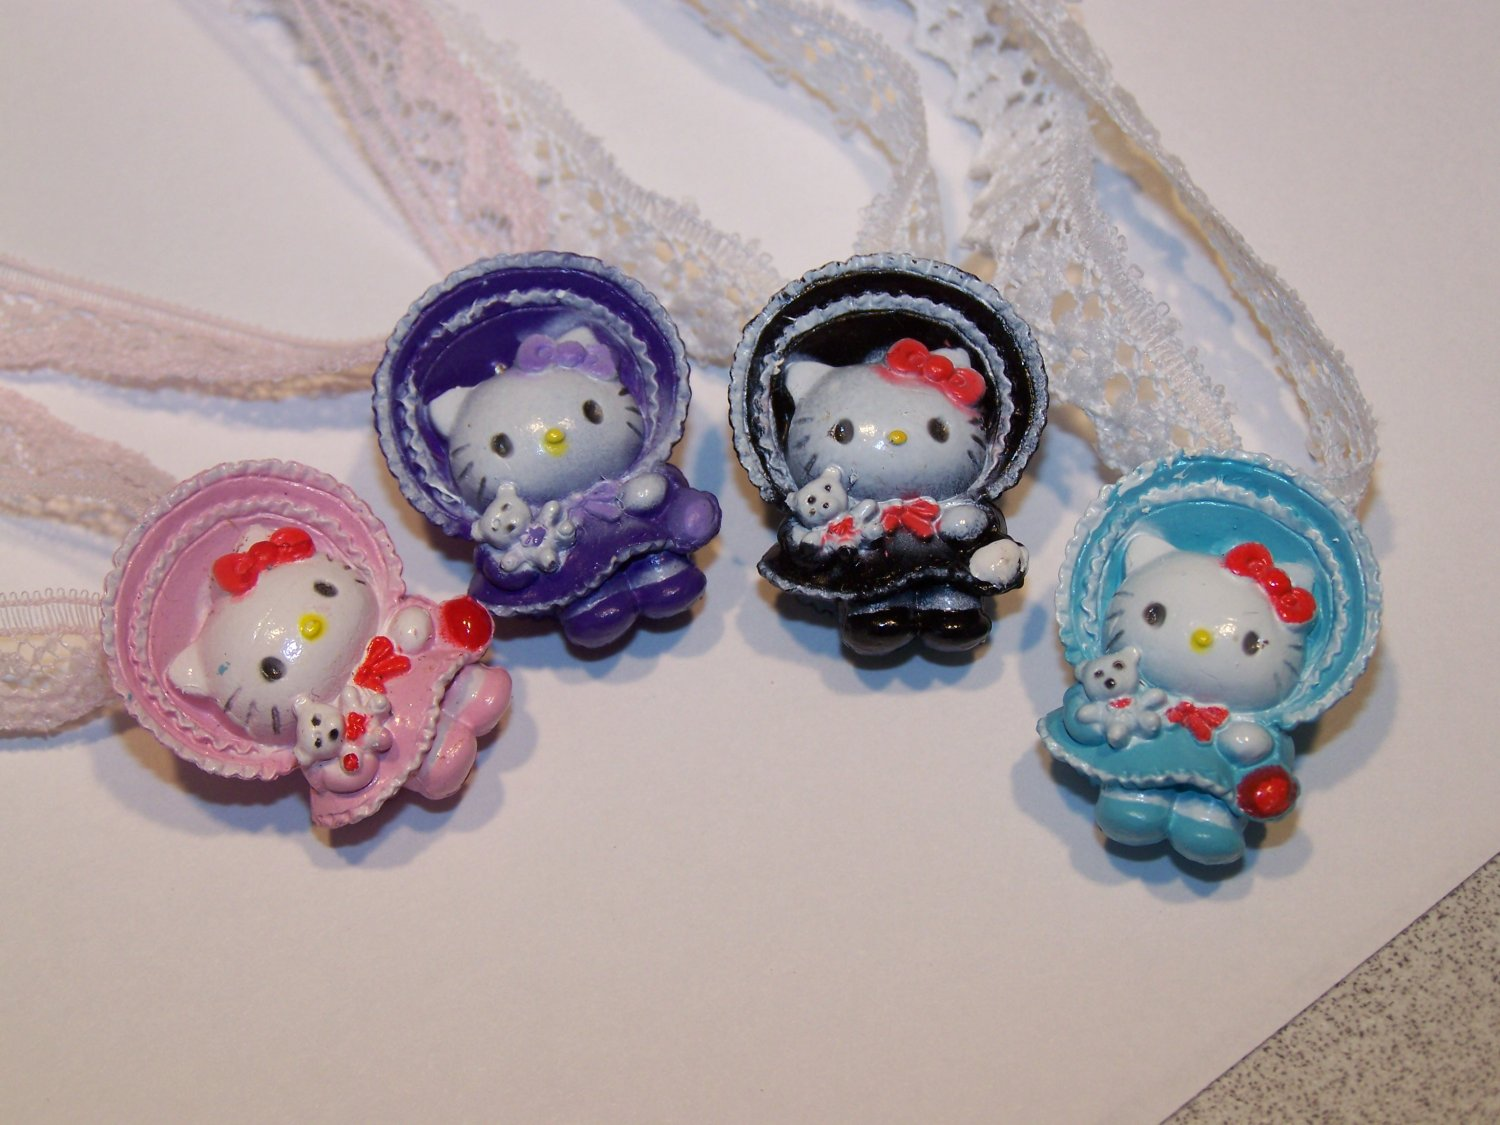 $5 New Handmade Vintage Hello Kitty Charm Necklace Lace Ties Pink Purple Black Teal Aqua